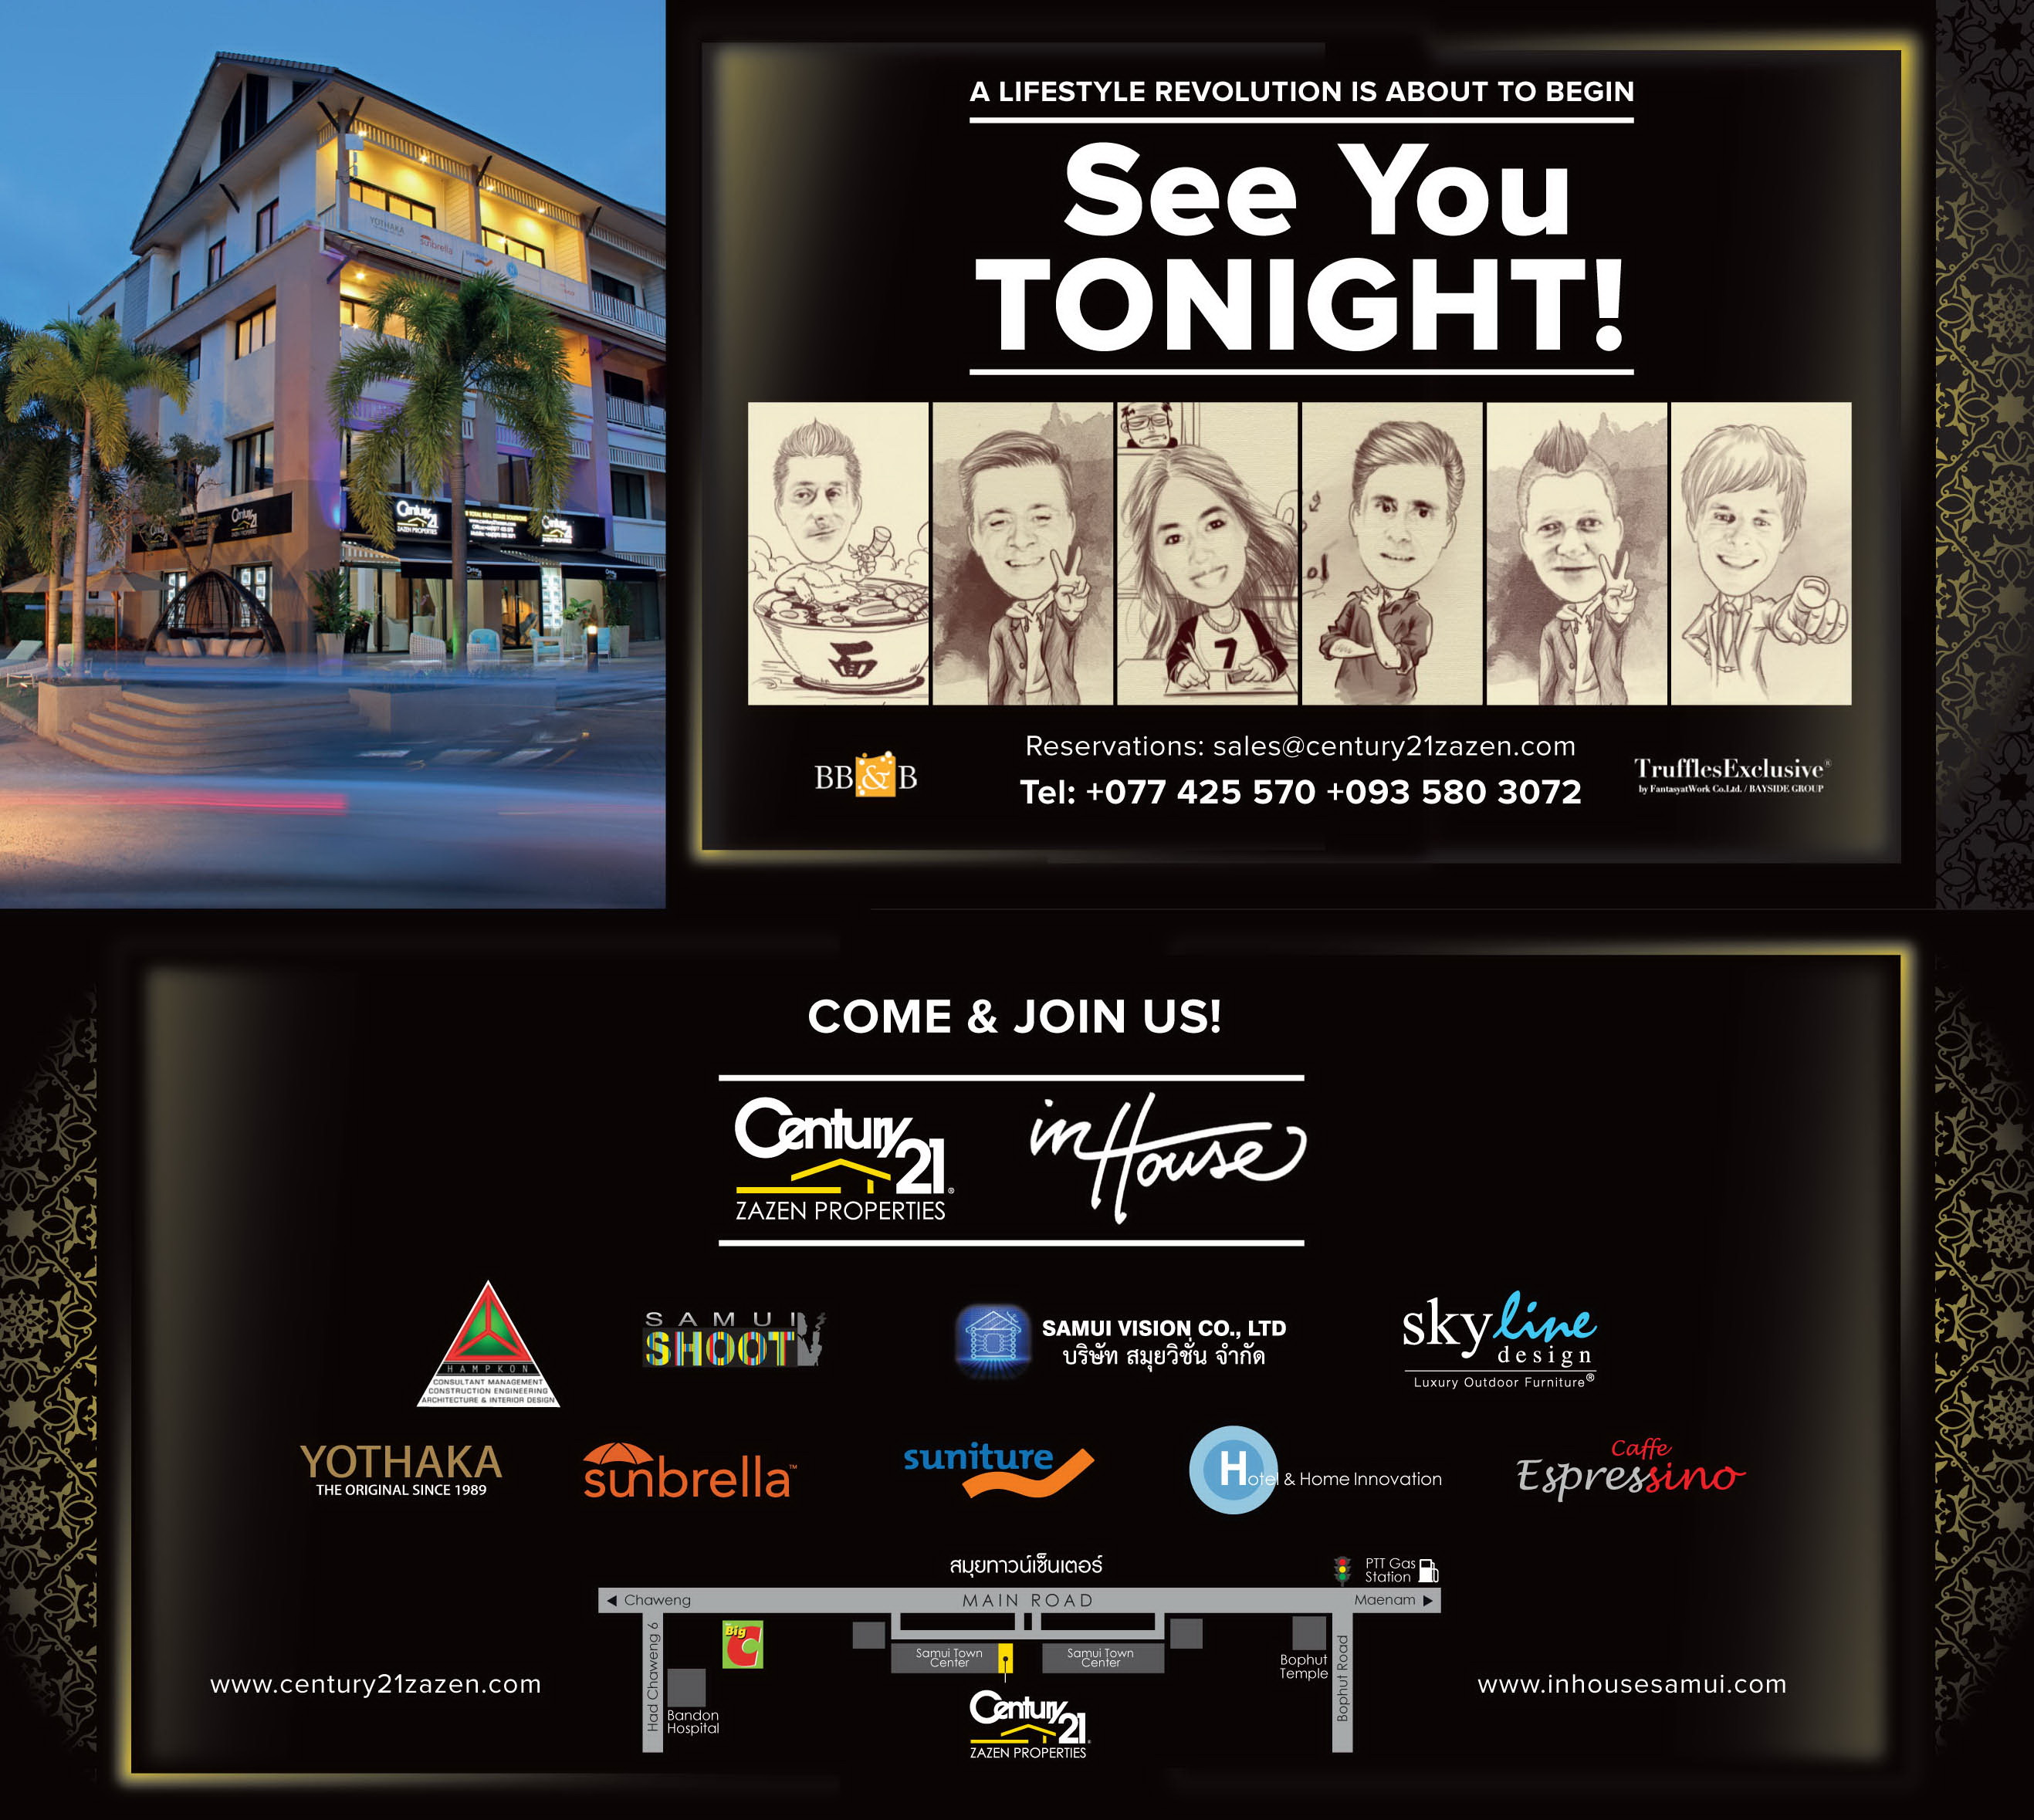 Century 21 Zazen Wine and Cheese evening for the Grand Opening tonight at 6pm | Samui Times